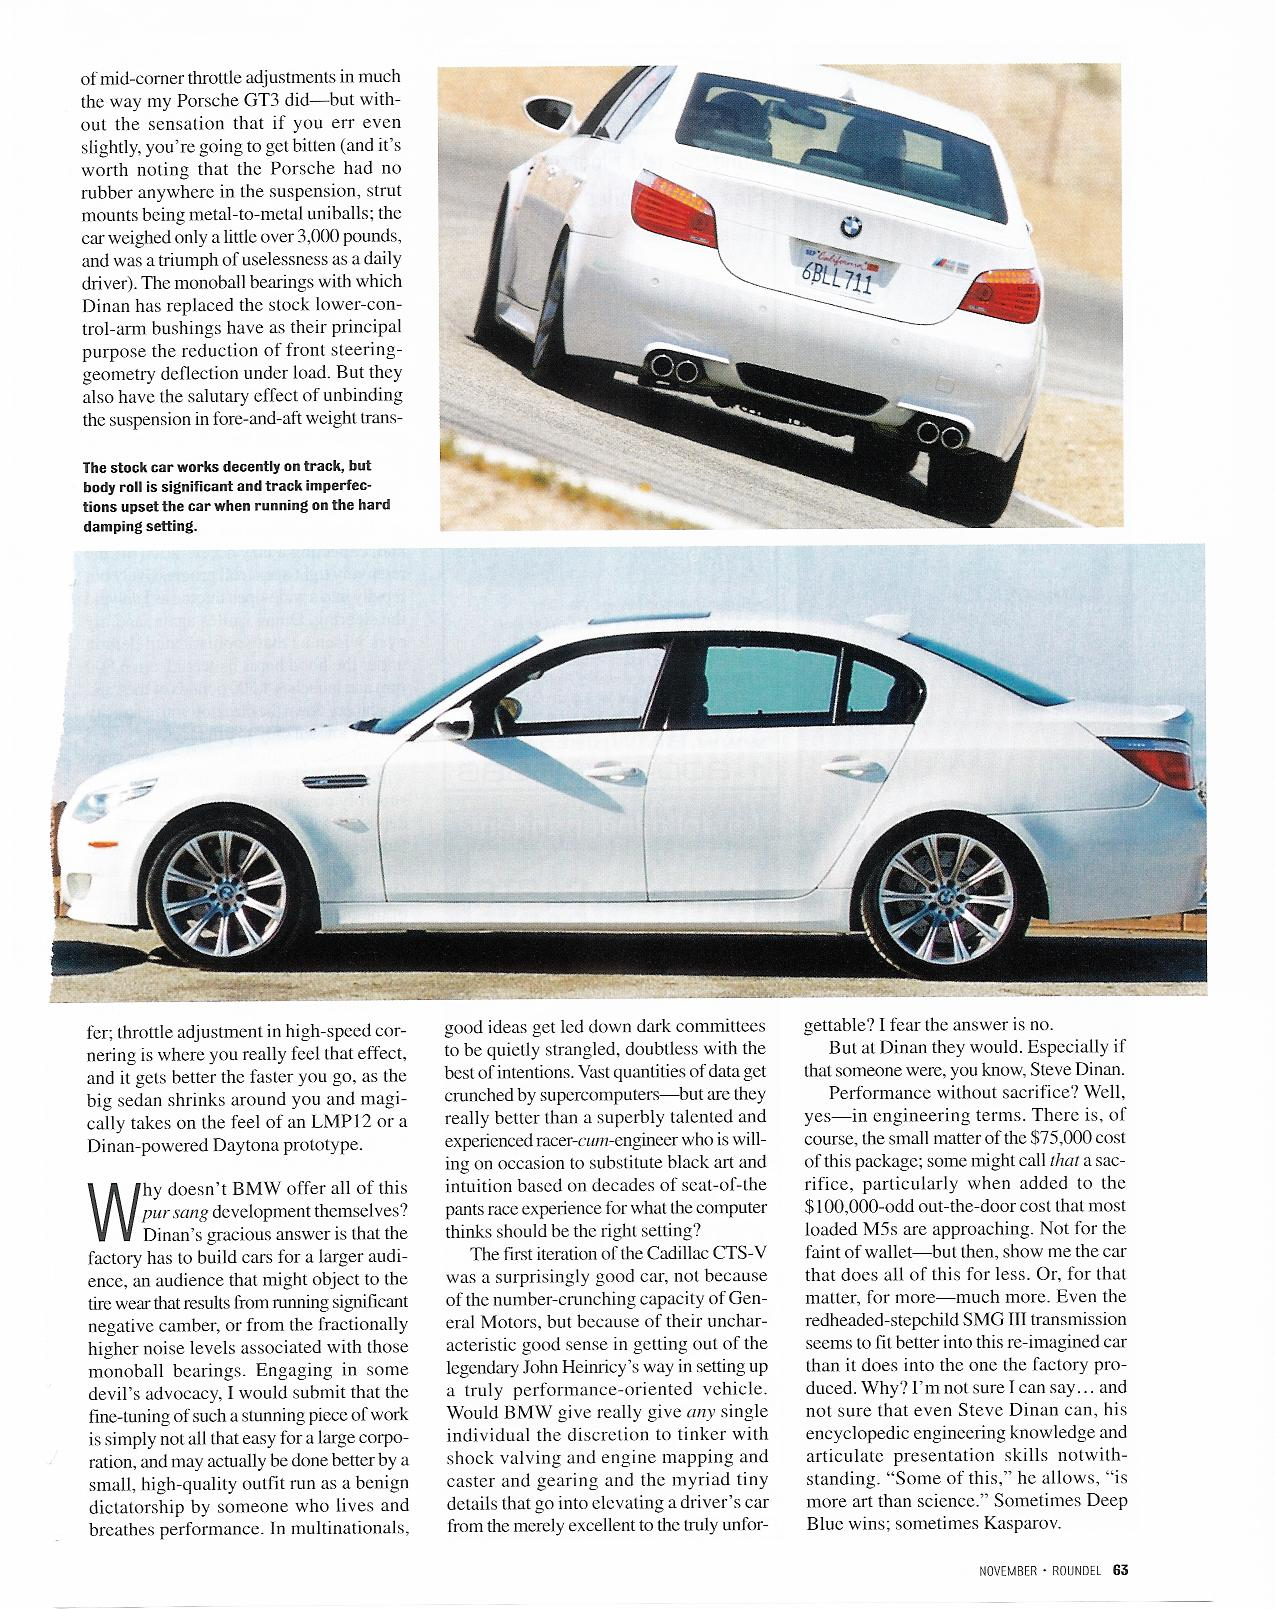 Stock E60 M5 owner evaluates Dinan S3 (Roundel Article)-roundel-article-dinan-e60-m5-s3-006.jpg